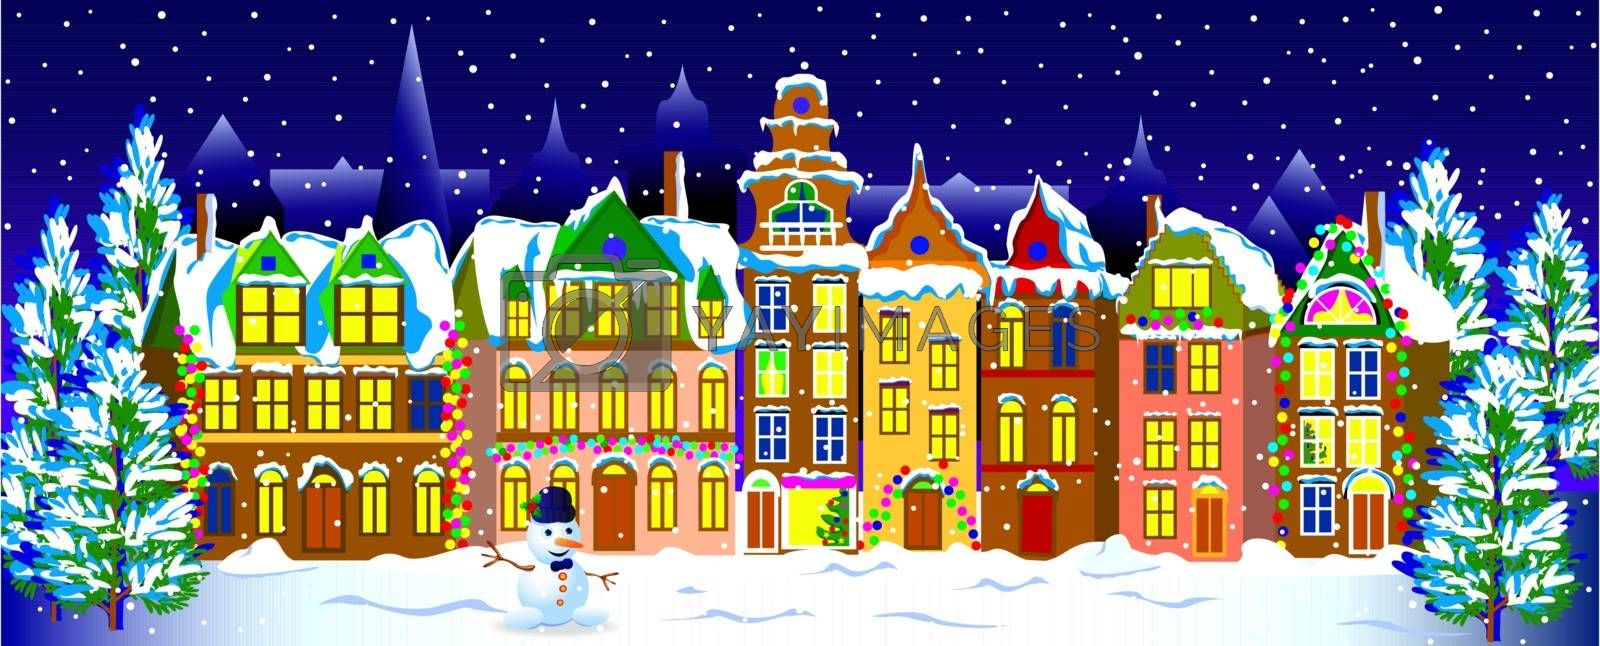 Winter night in the old town. by liolle